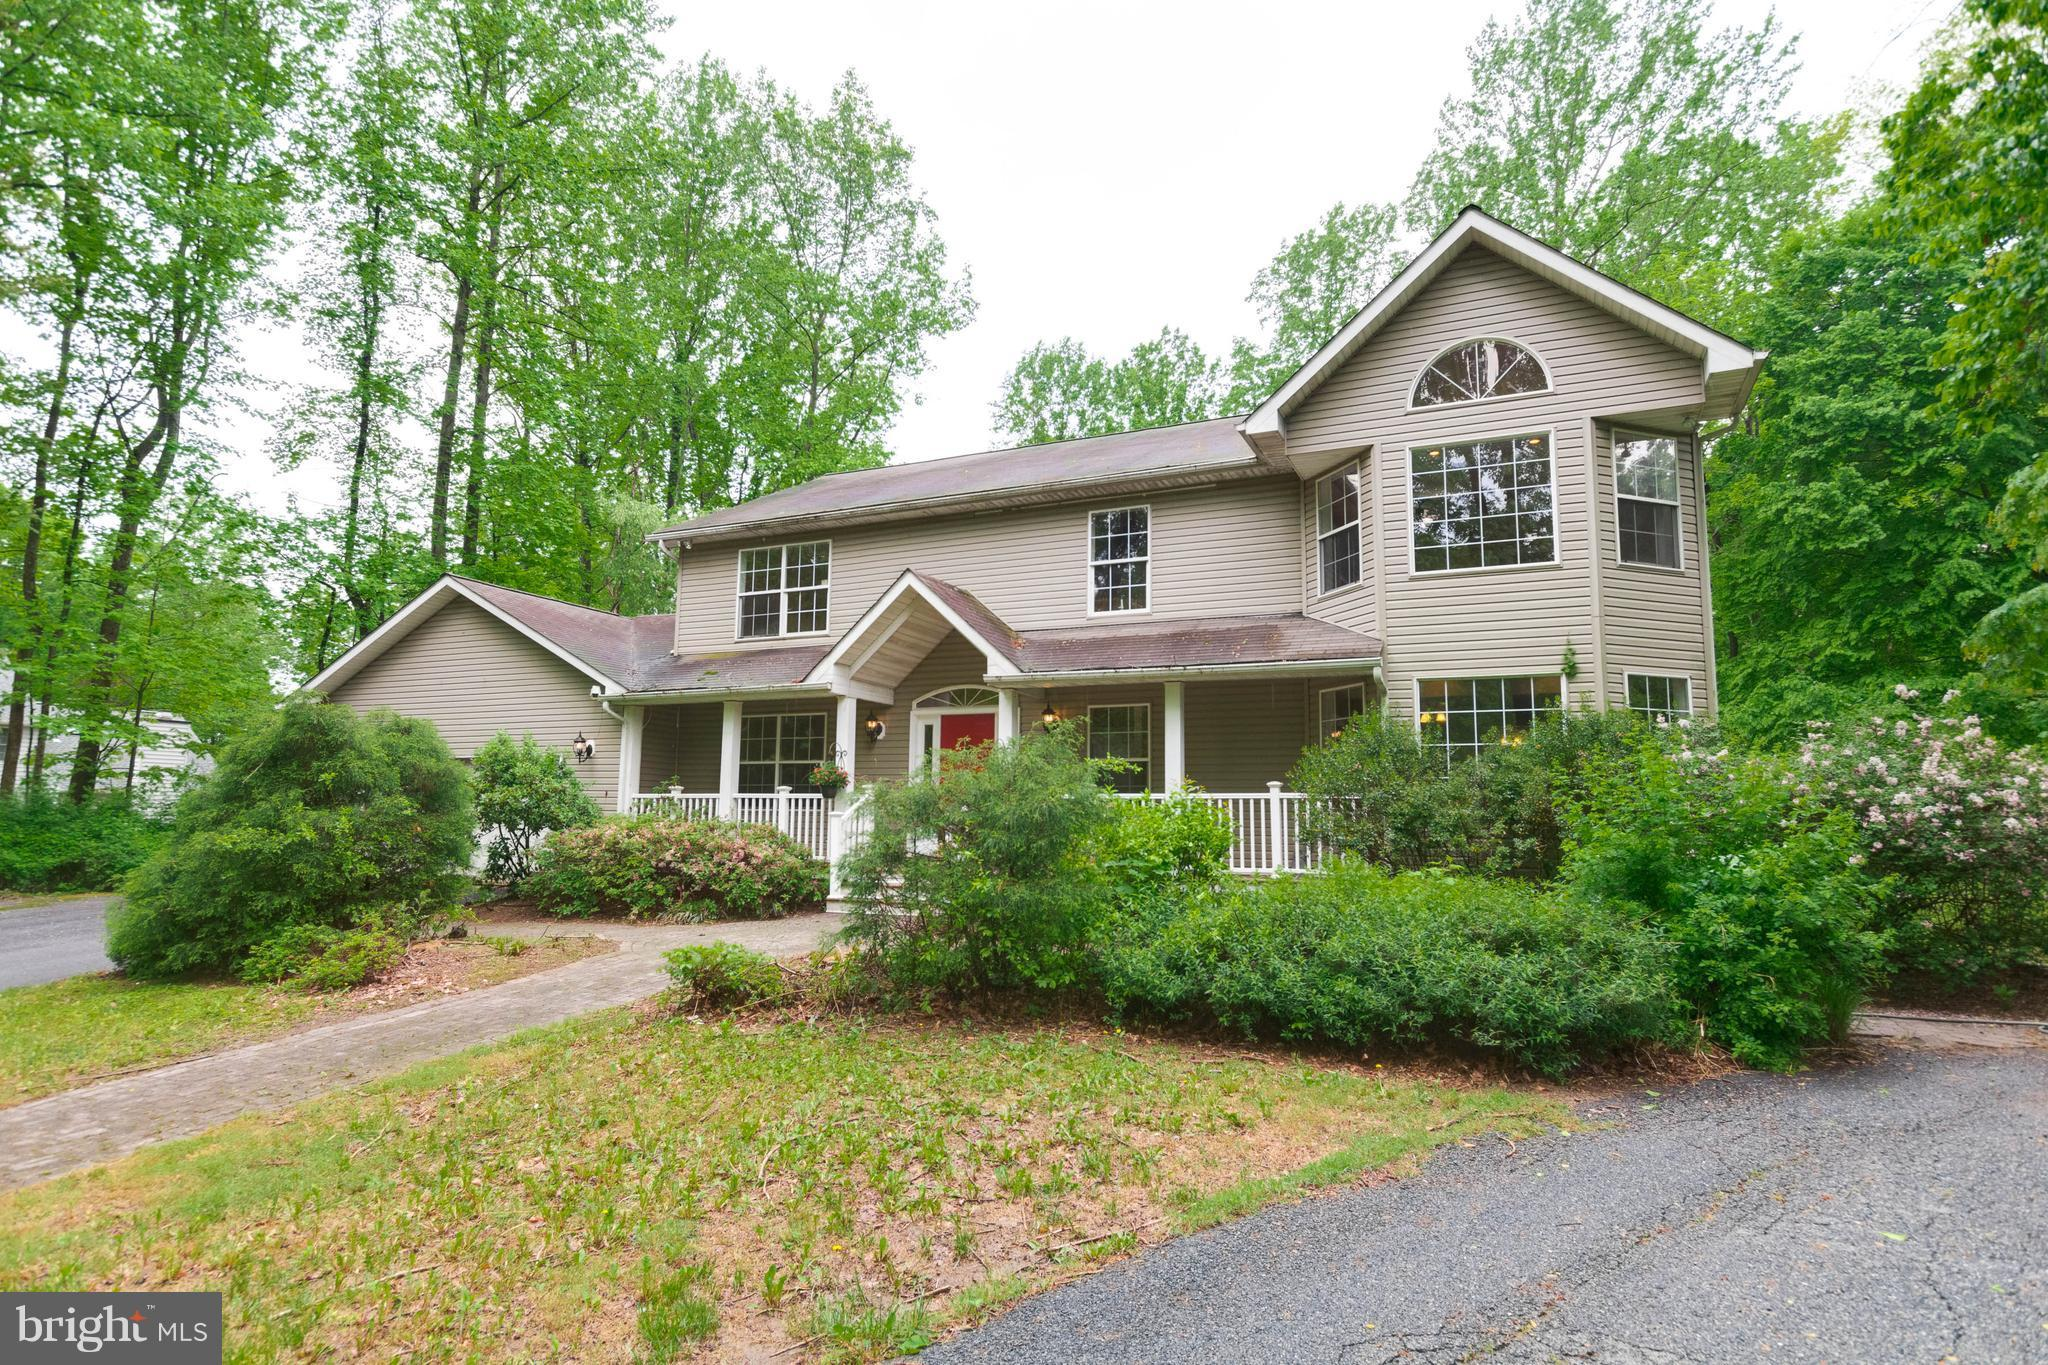 Amazing opportunity! Private wooded acerage w/ stream. Needs cosmetic updates & priced accordingly - make it your own & have instant equity! Huge master w/massive walk-in closet & garden bath, 2nd & 3rd BR each w/walk-in closets. Cedar closet & oversized pantry in bsmt.  Shed looks like a playhouse! 4+ space pkg, 400 amp elec svc, extensive landscape lighting & ext outlets.  Perfect for 203K loan.